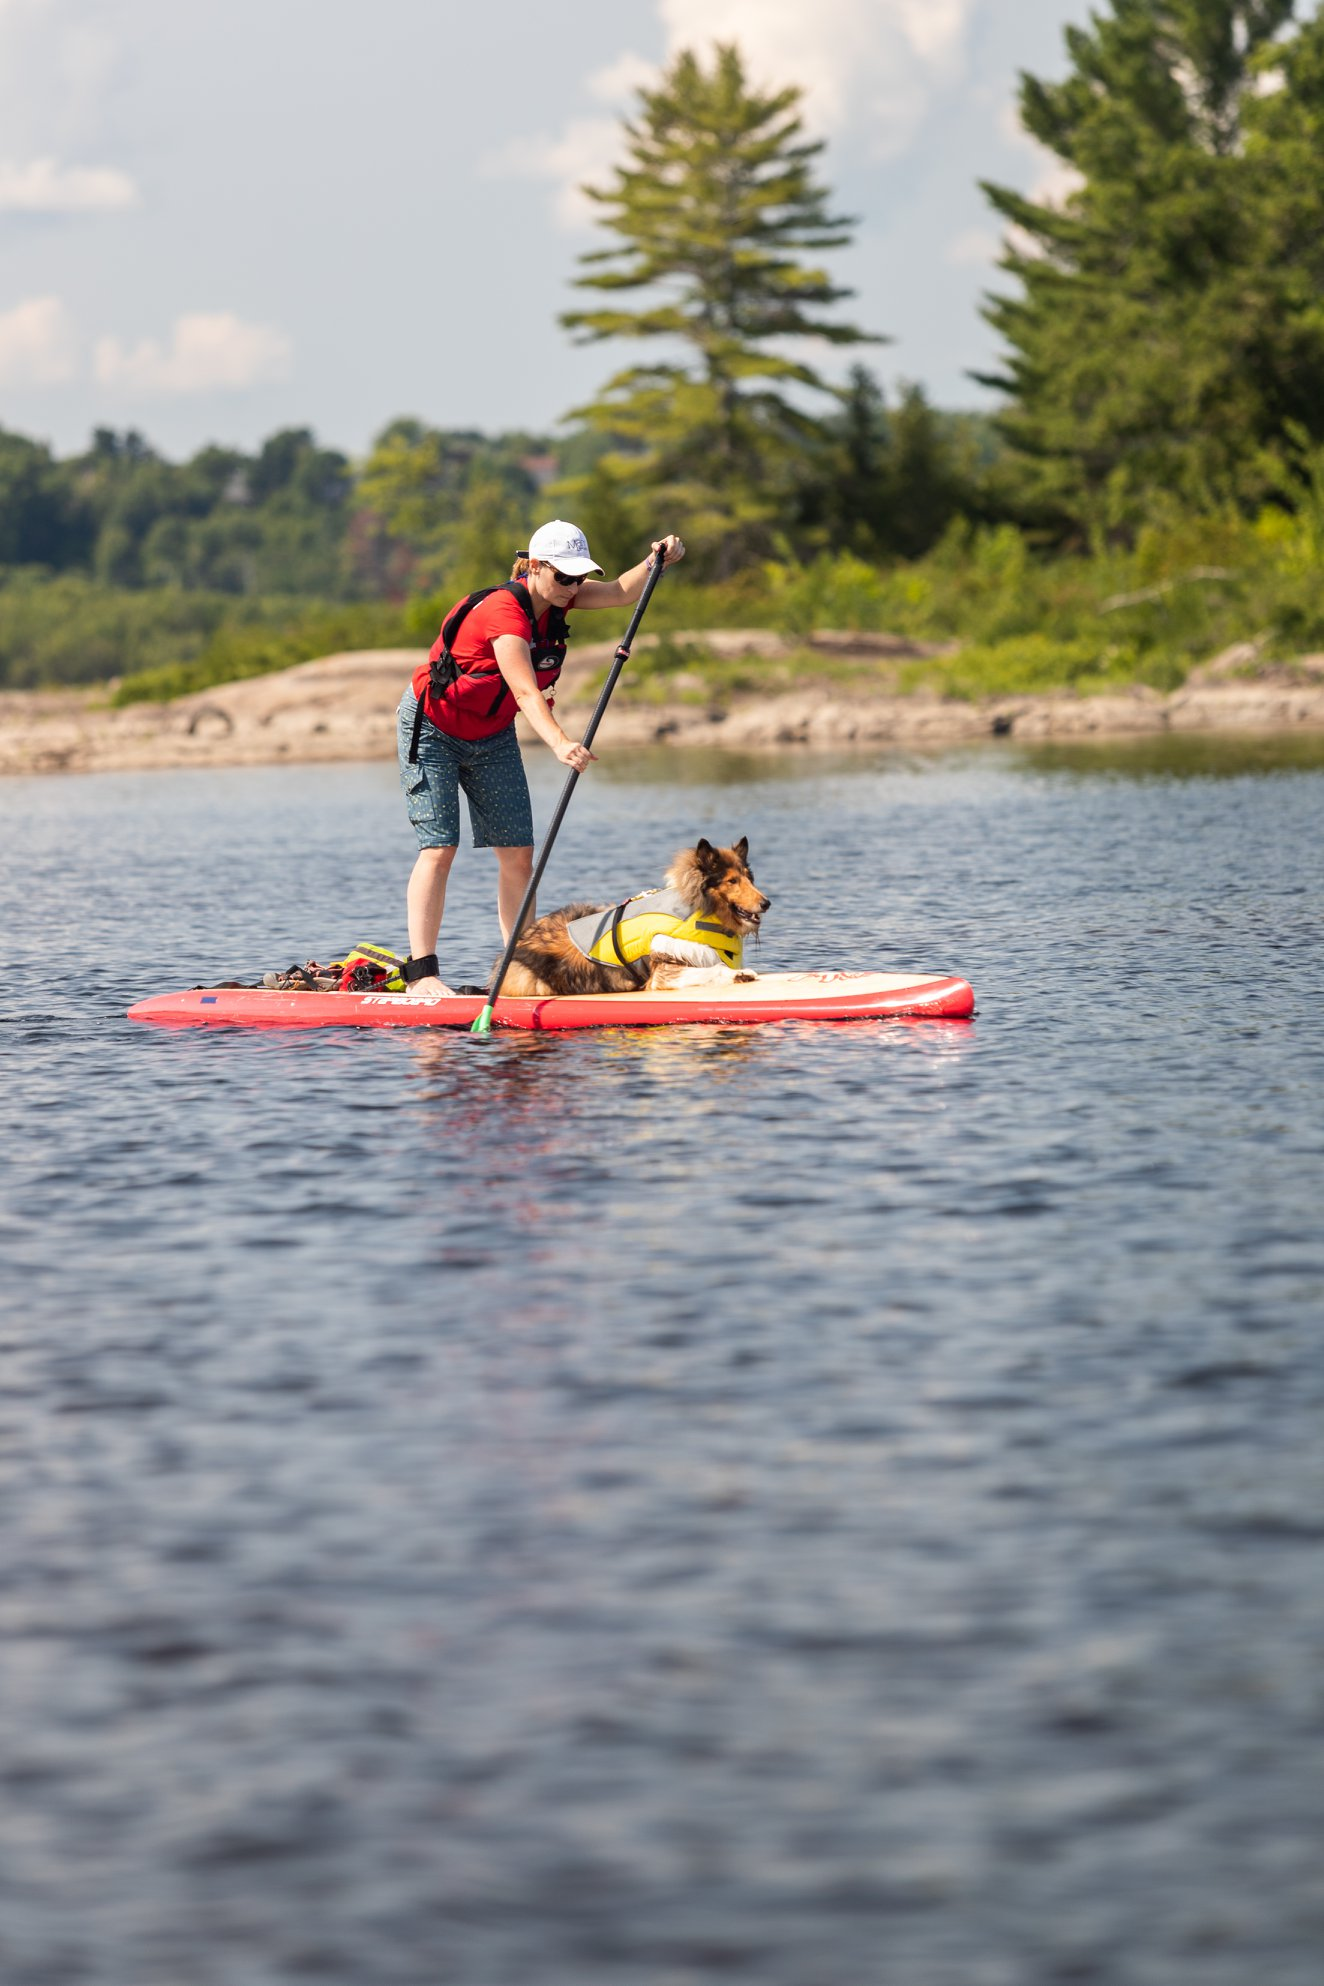 Stand up paddle boarder on the ottawa river with a dog sitting on board